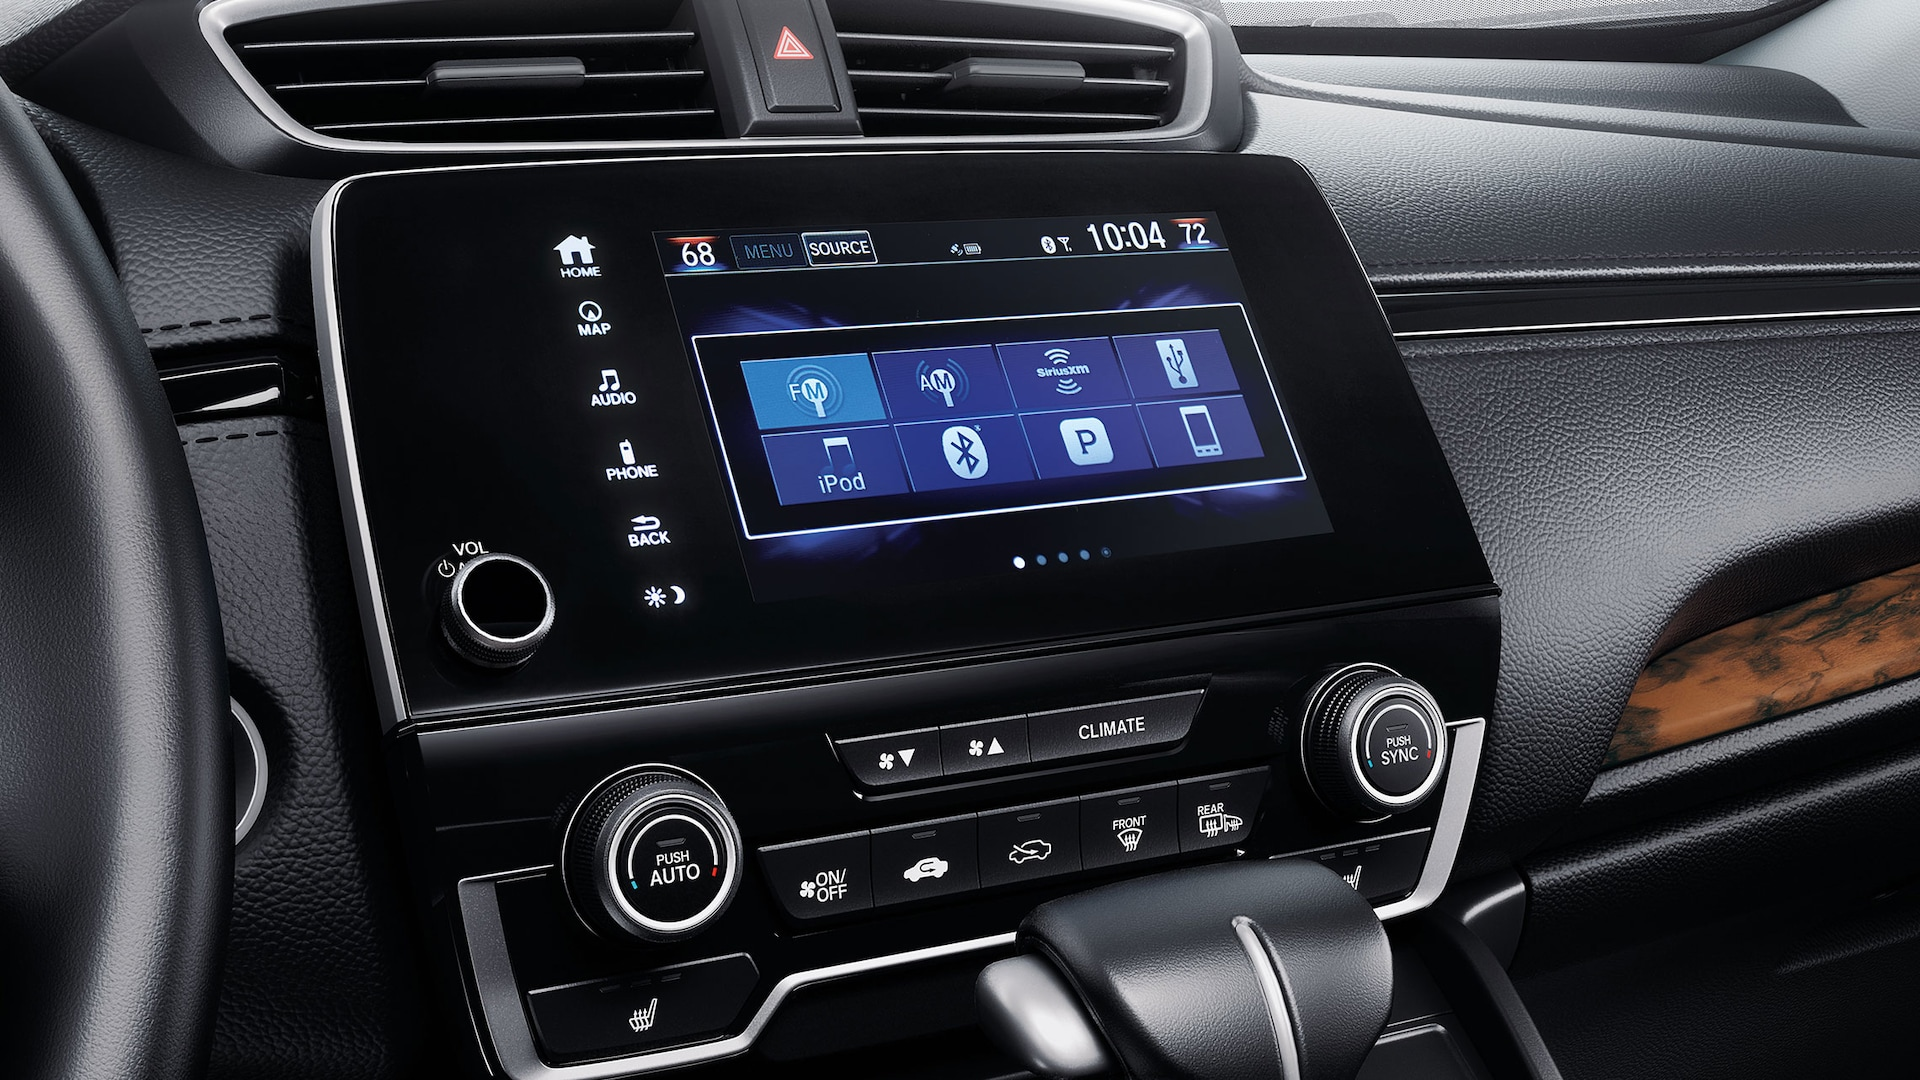 Audio menu detail on Display Audio touch-screen in the 2020 Honda CR-V.